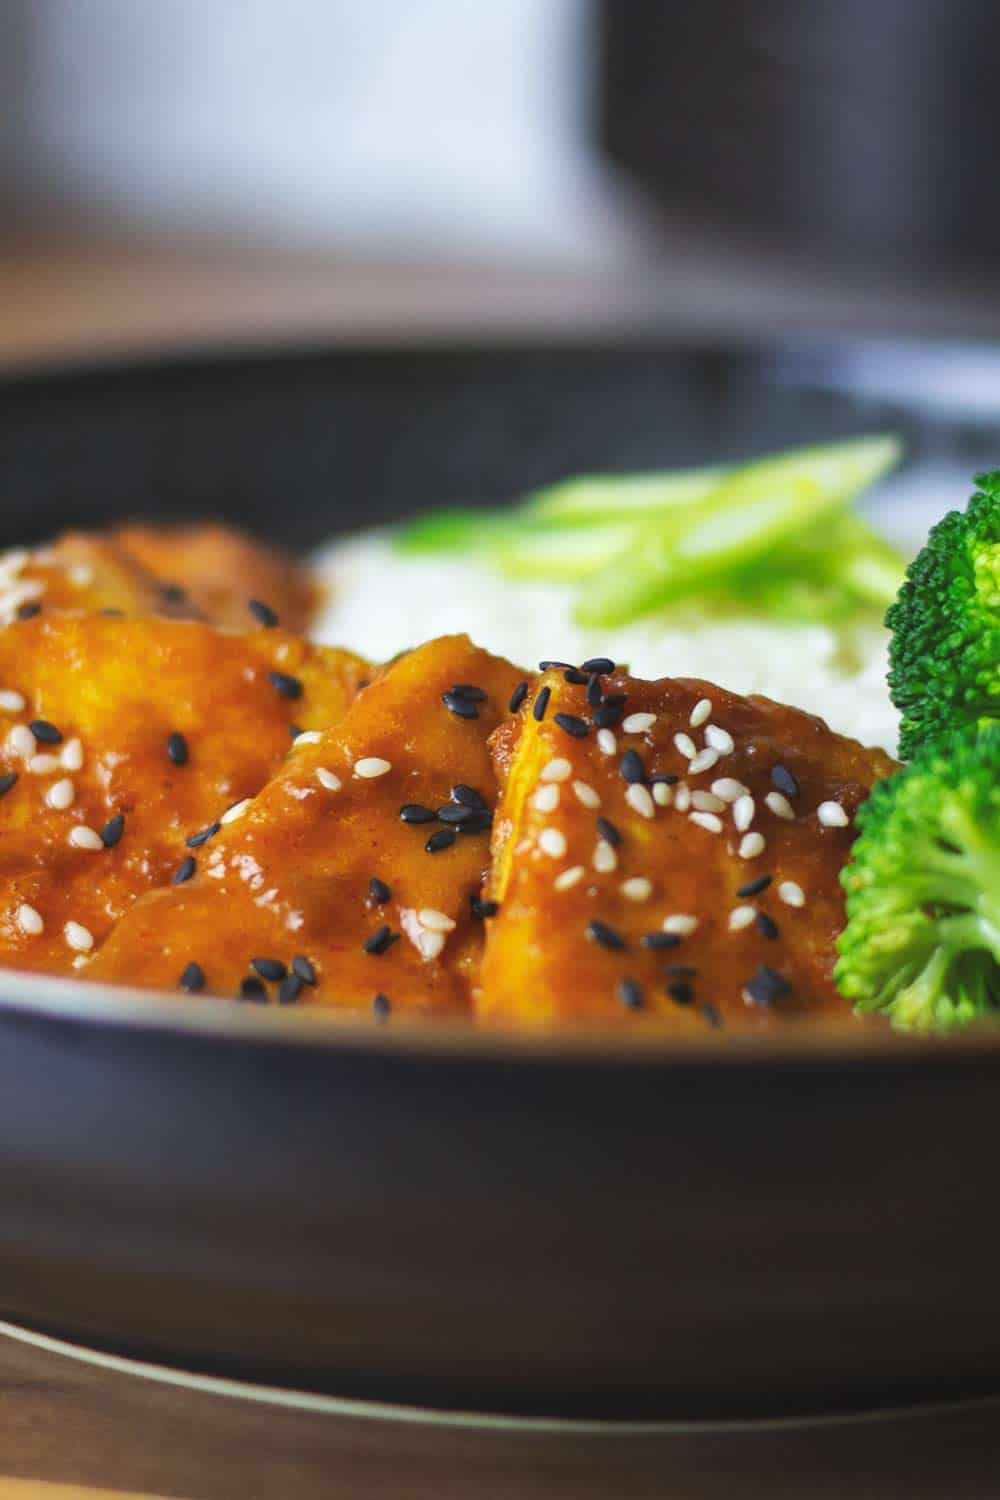 Peanut tamarind tofu in a bowl with rice and broccoli